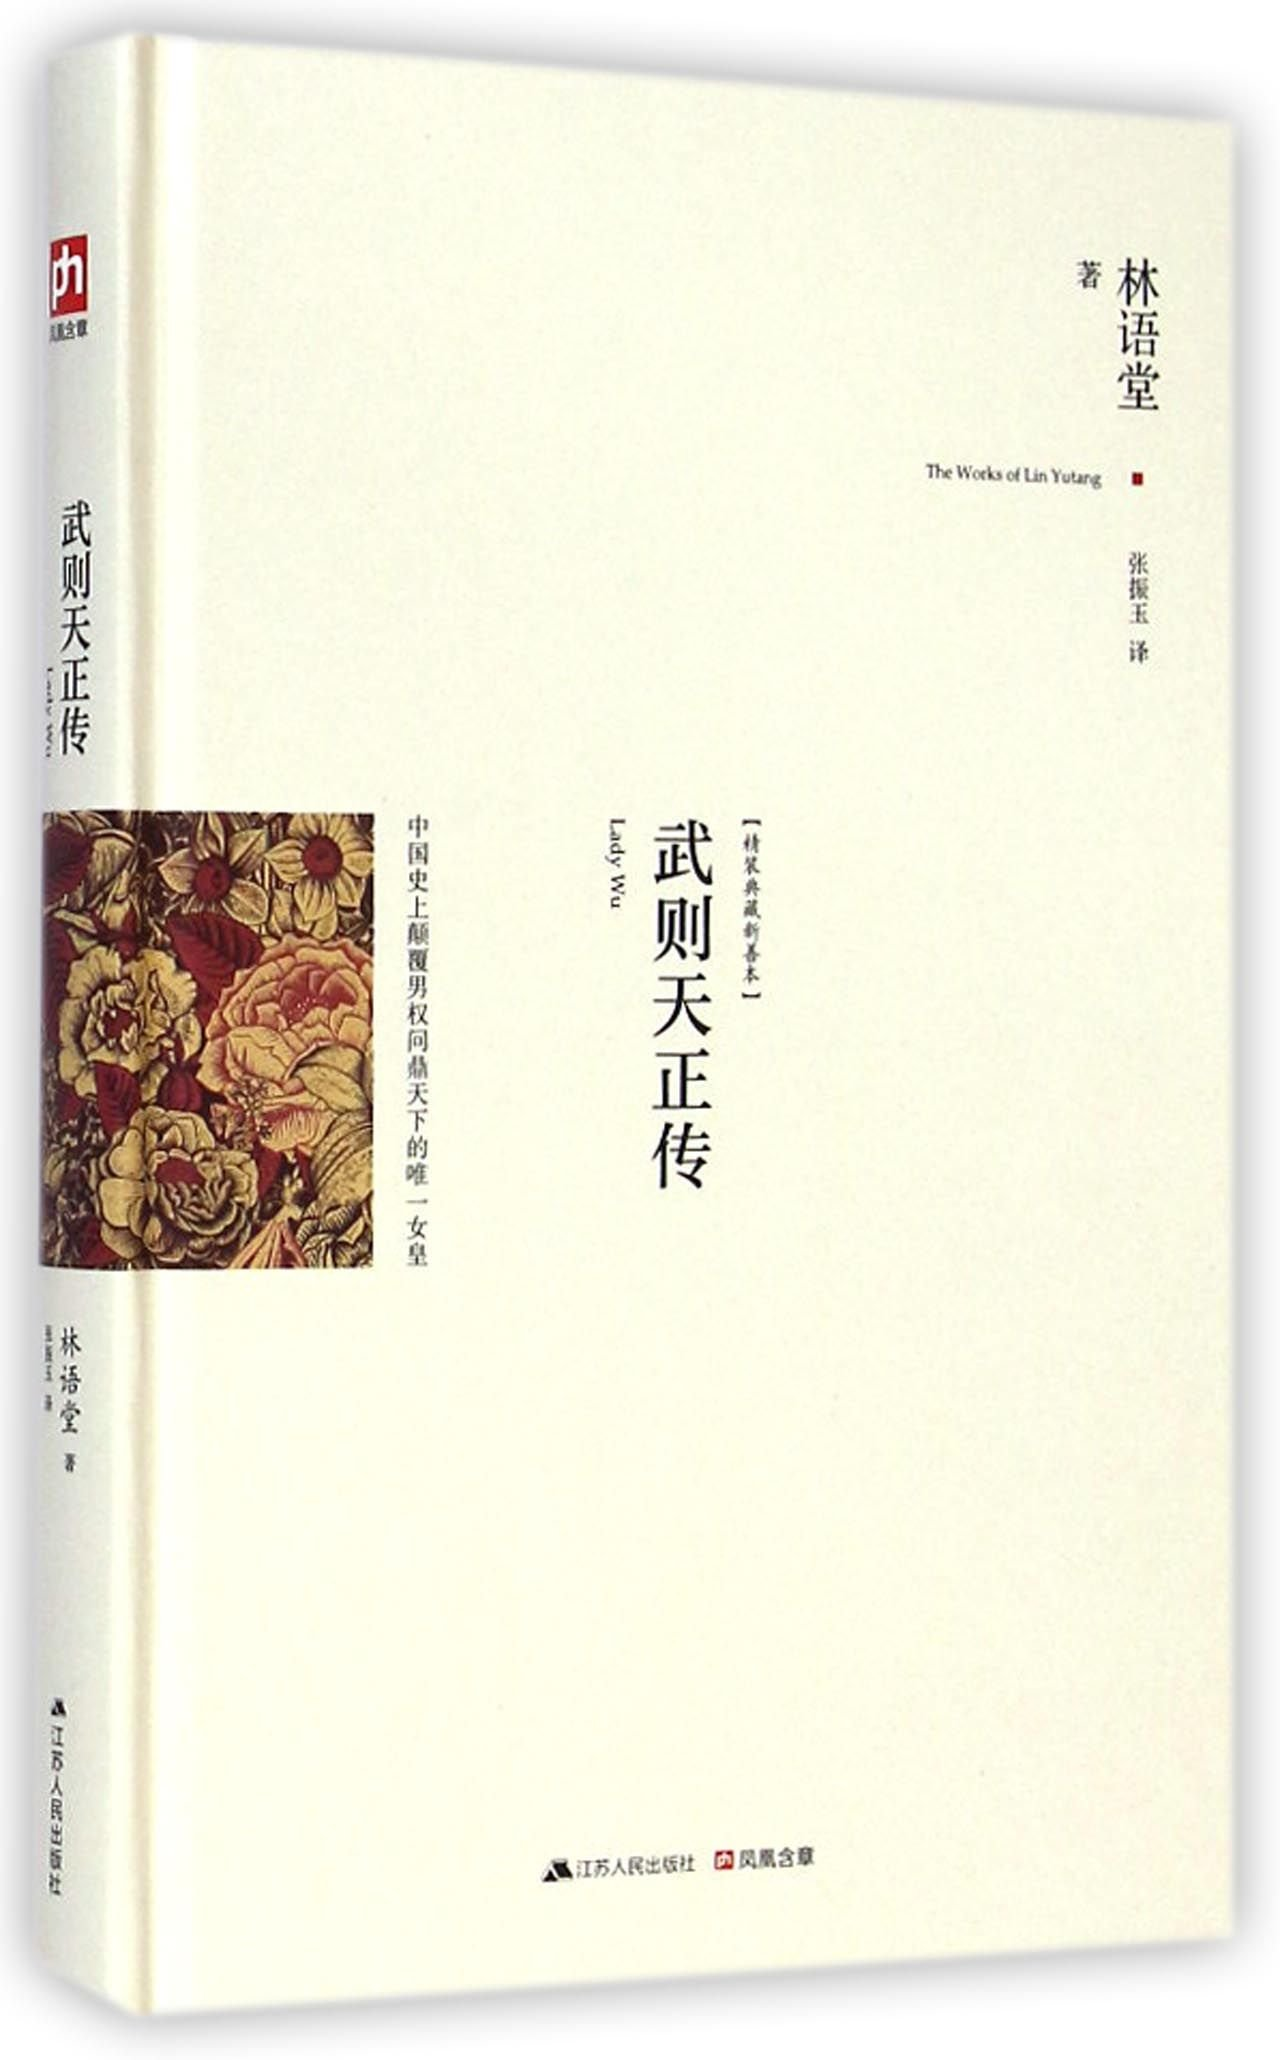 Wu Story (new hardcover collection of rare books)(Chinese Edition) pdf epub